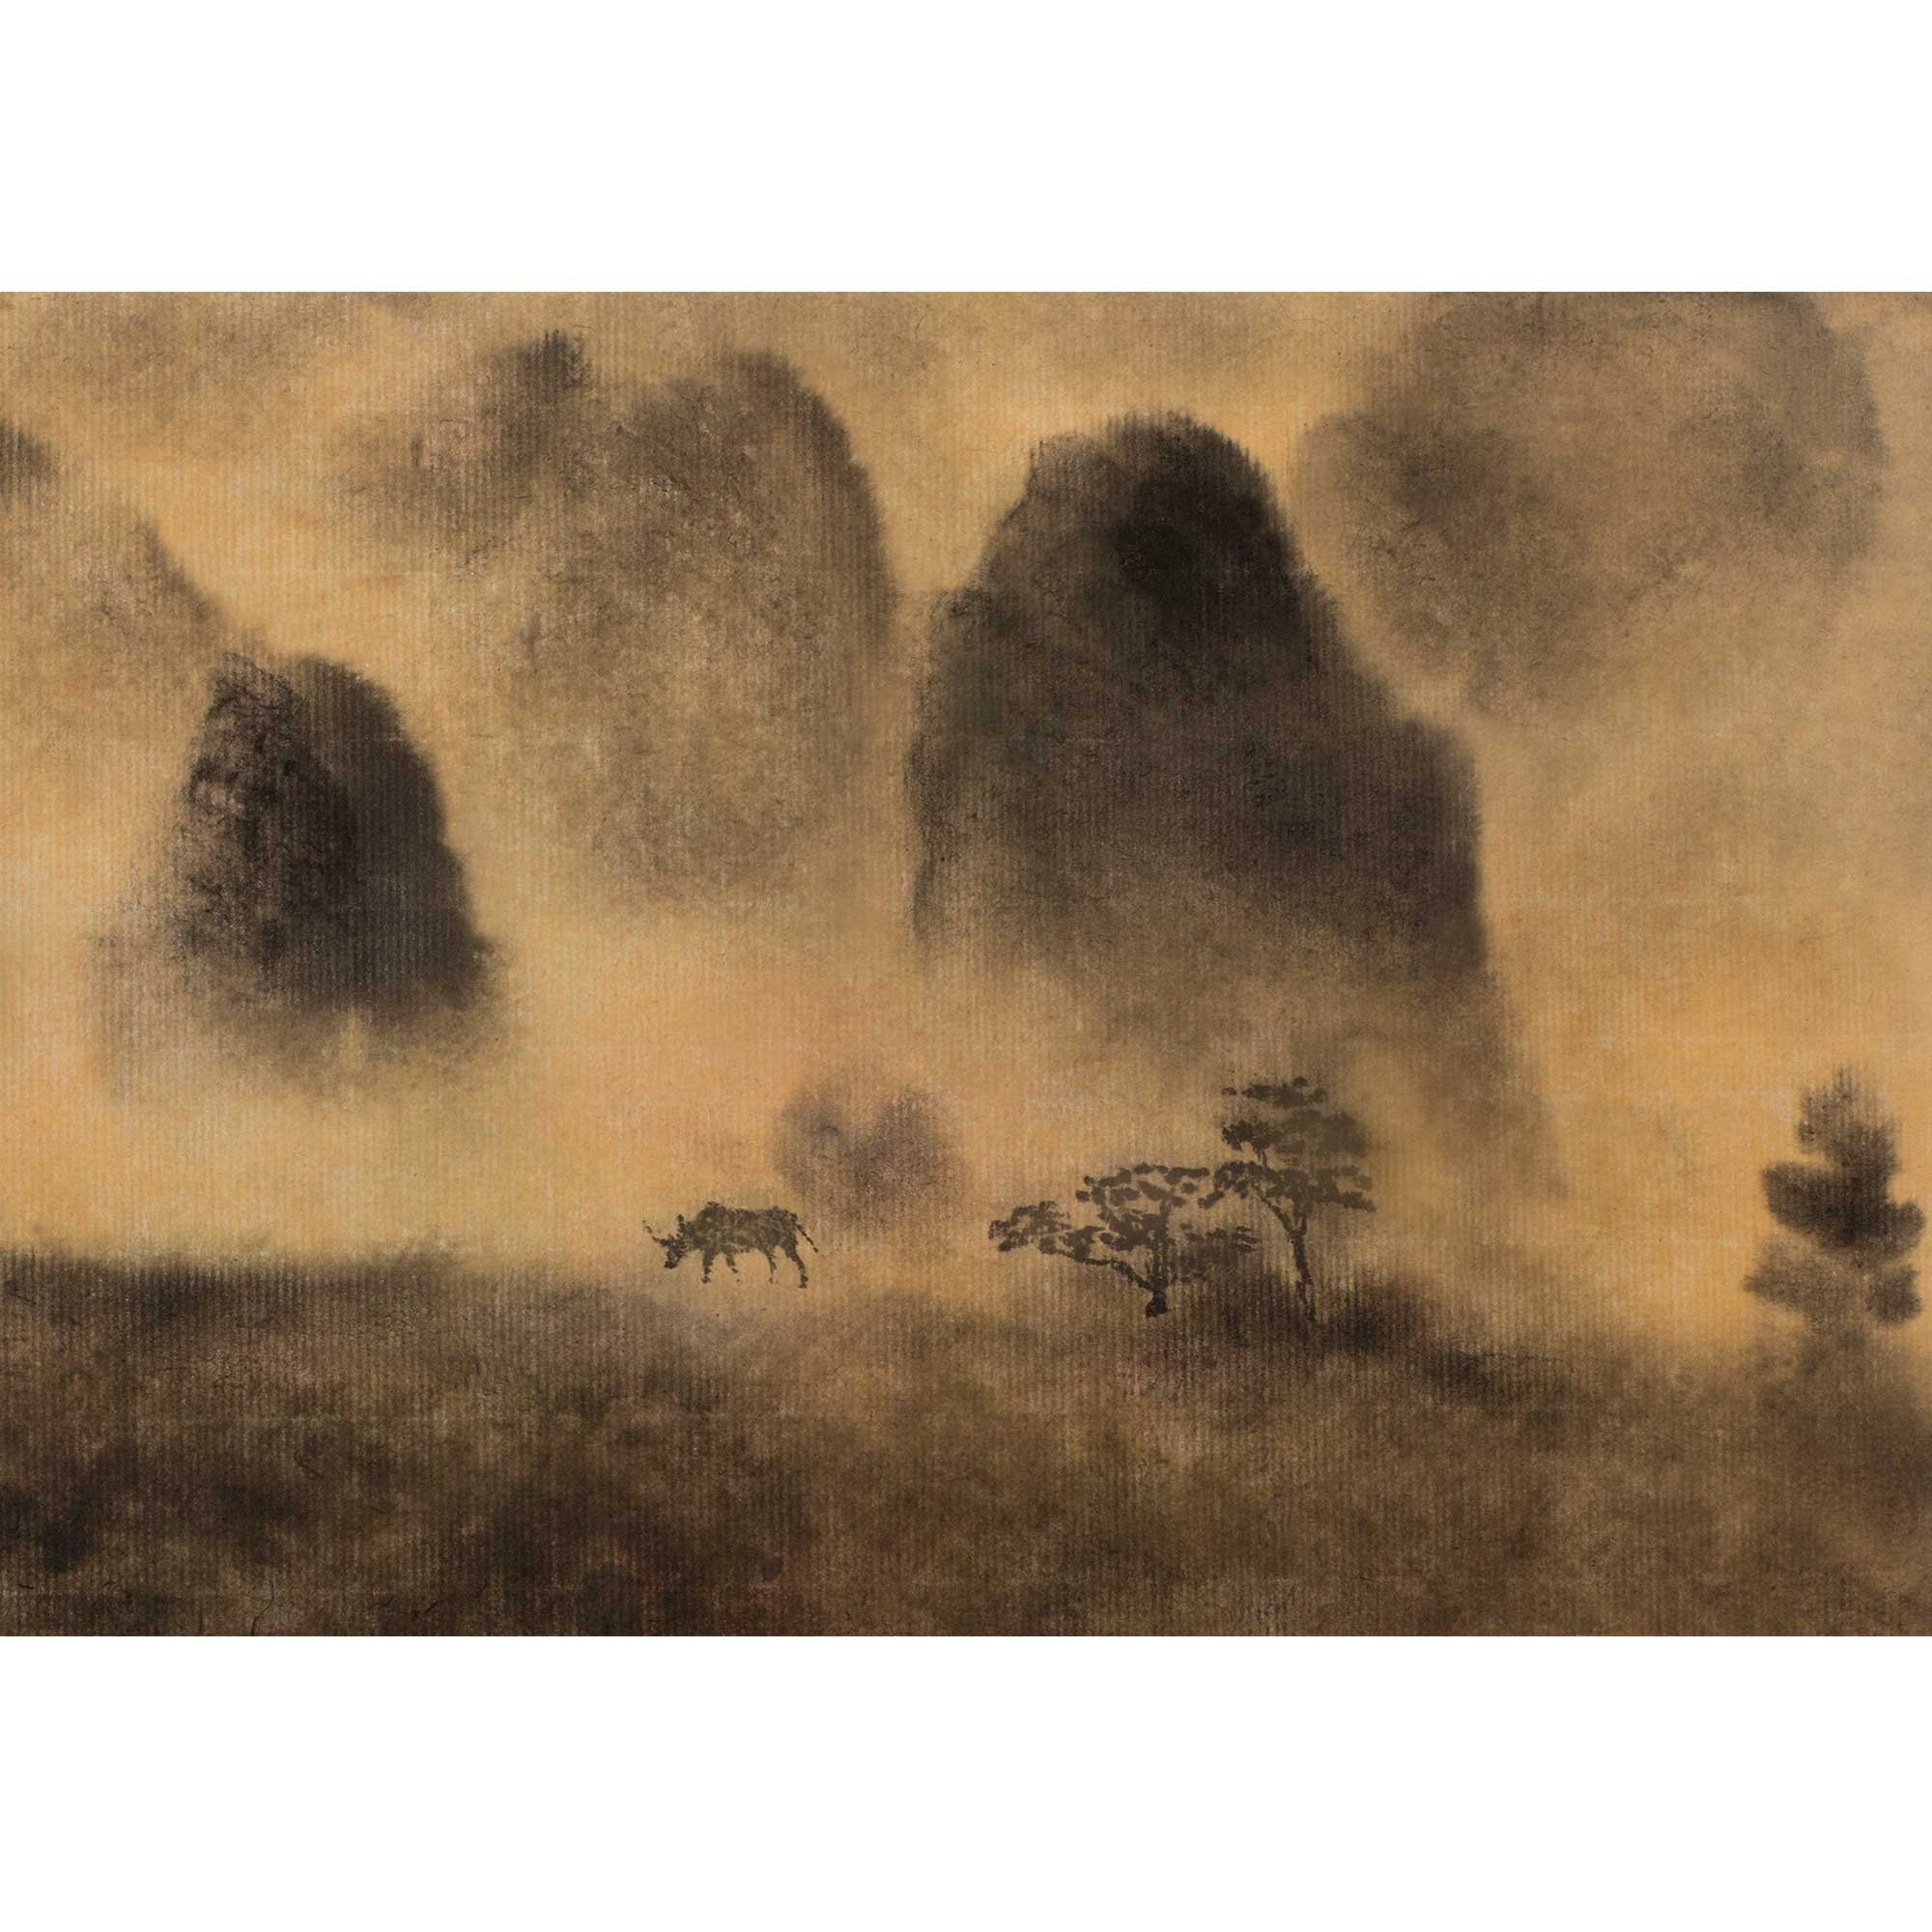 wall26 - Yellow Fog and Chinese Mountain - Removable Wall Mural | Self-Adhesive Large Wallpaper - 100x144 inches by wall26 (Image #2)